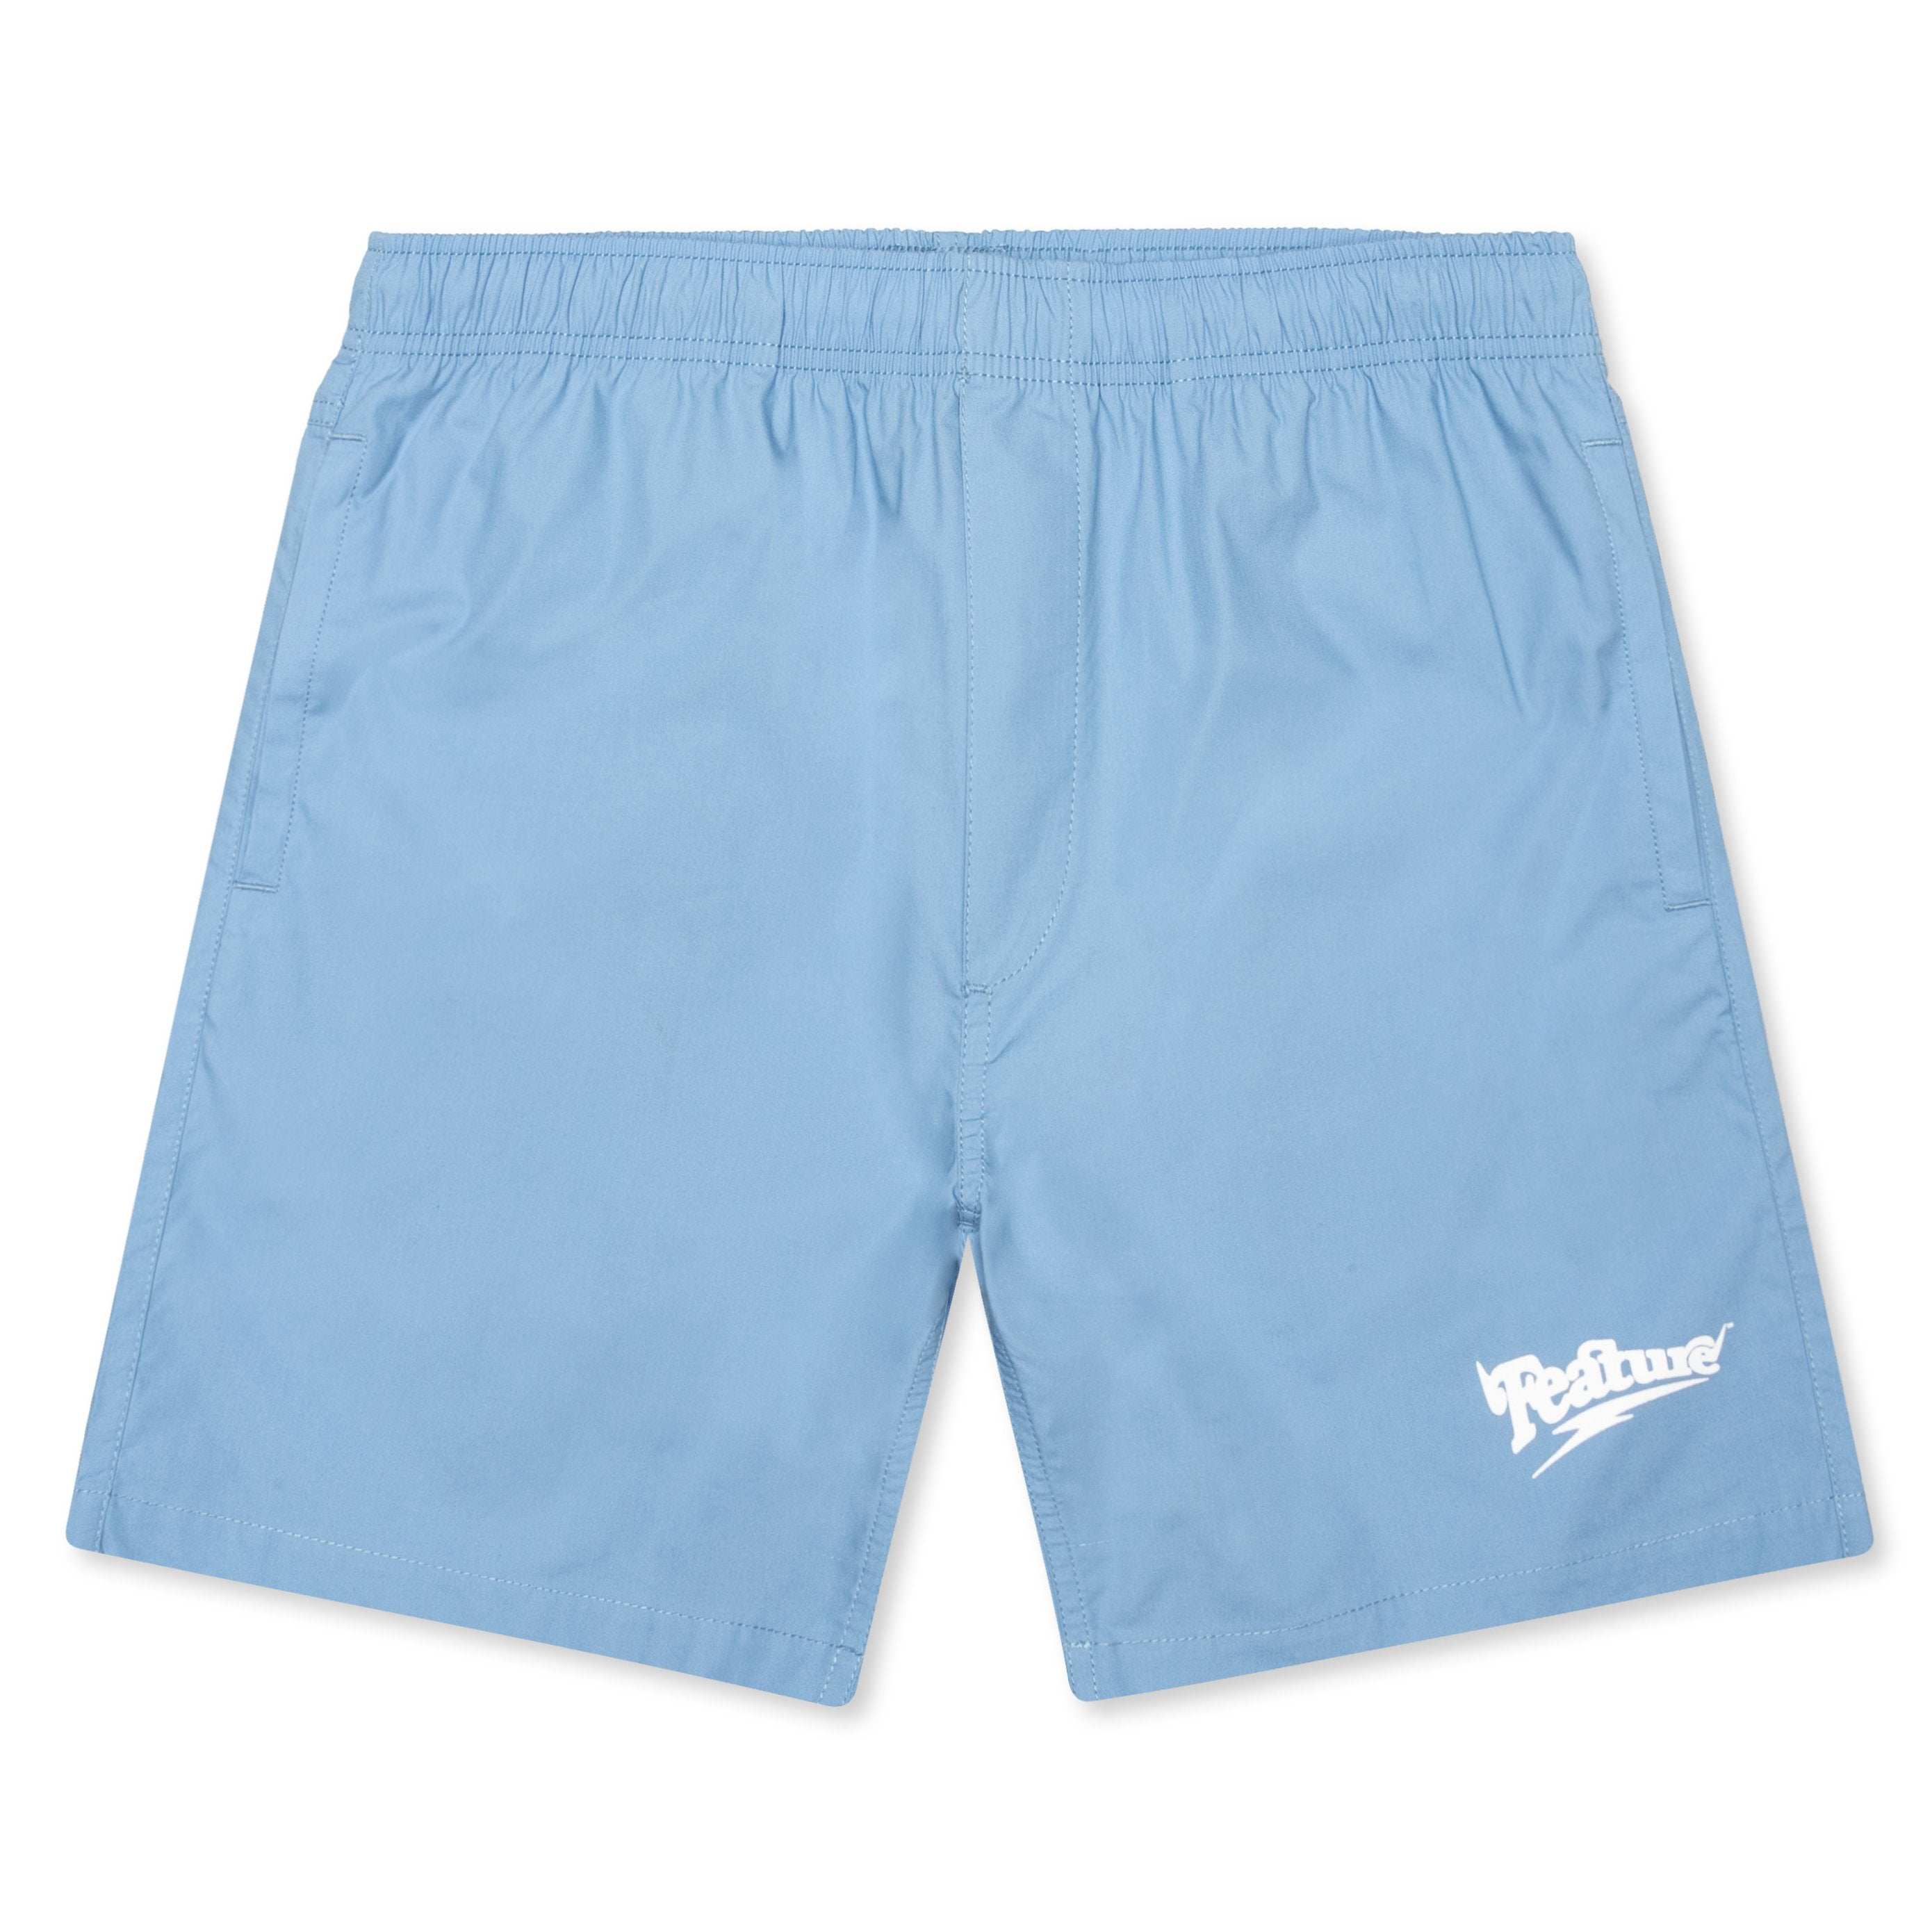 Feature Spike Shorts - Baby Blue